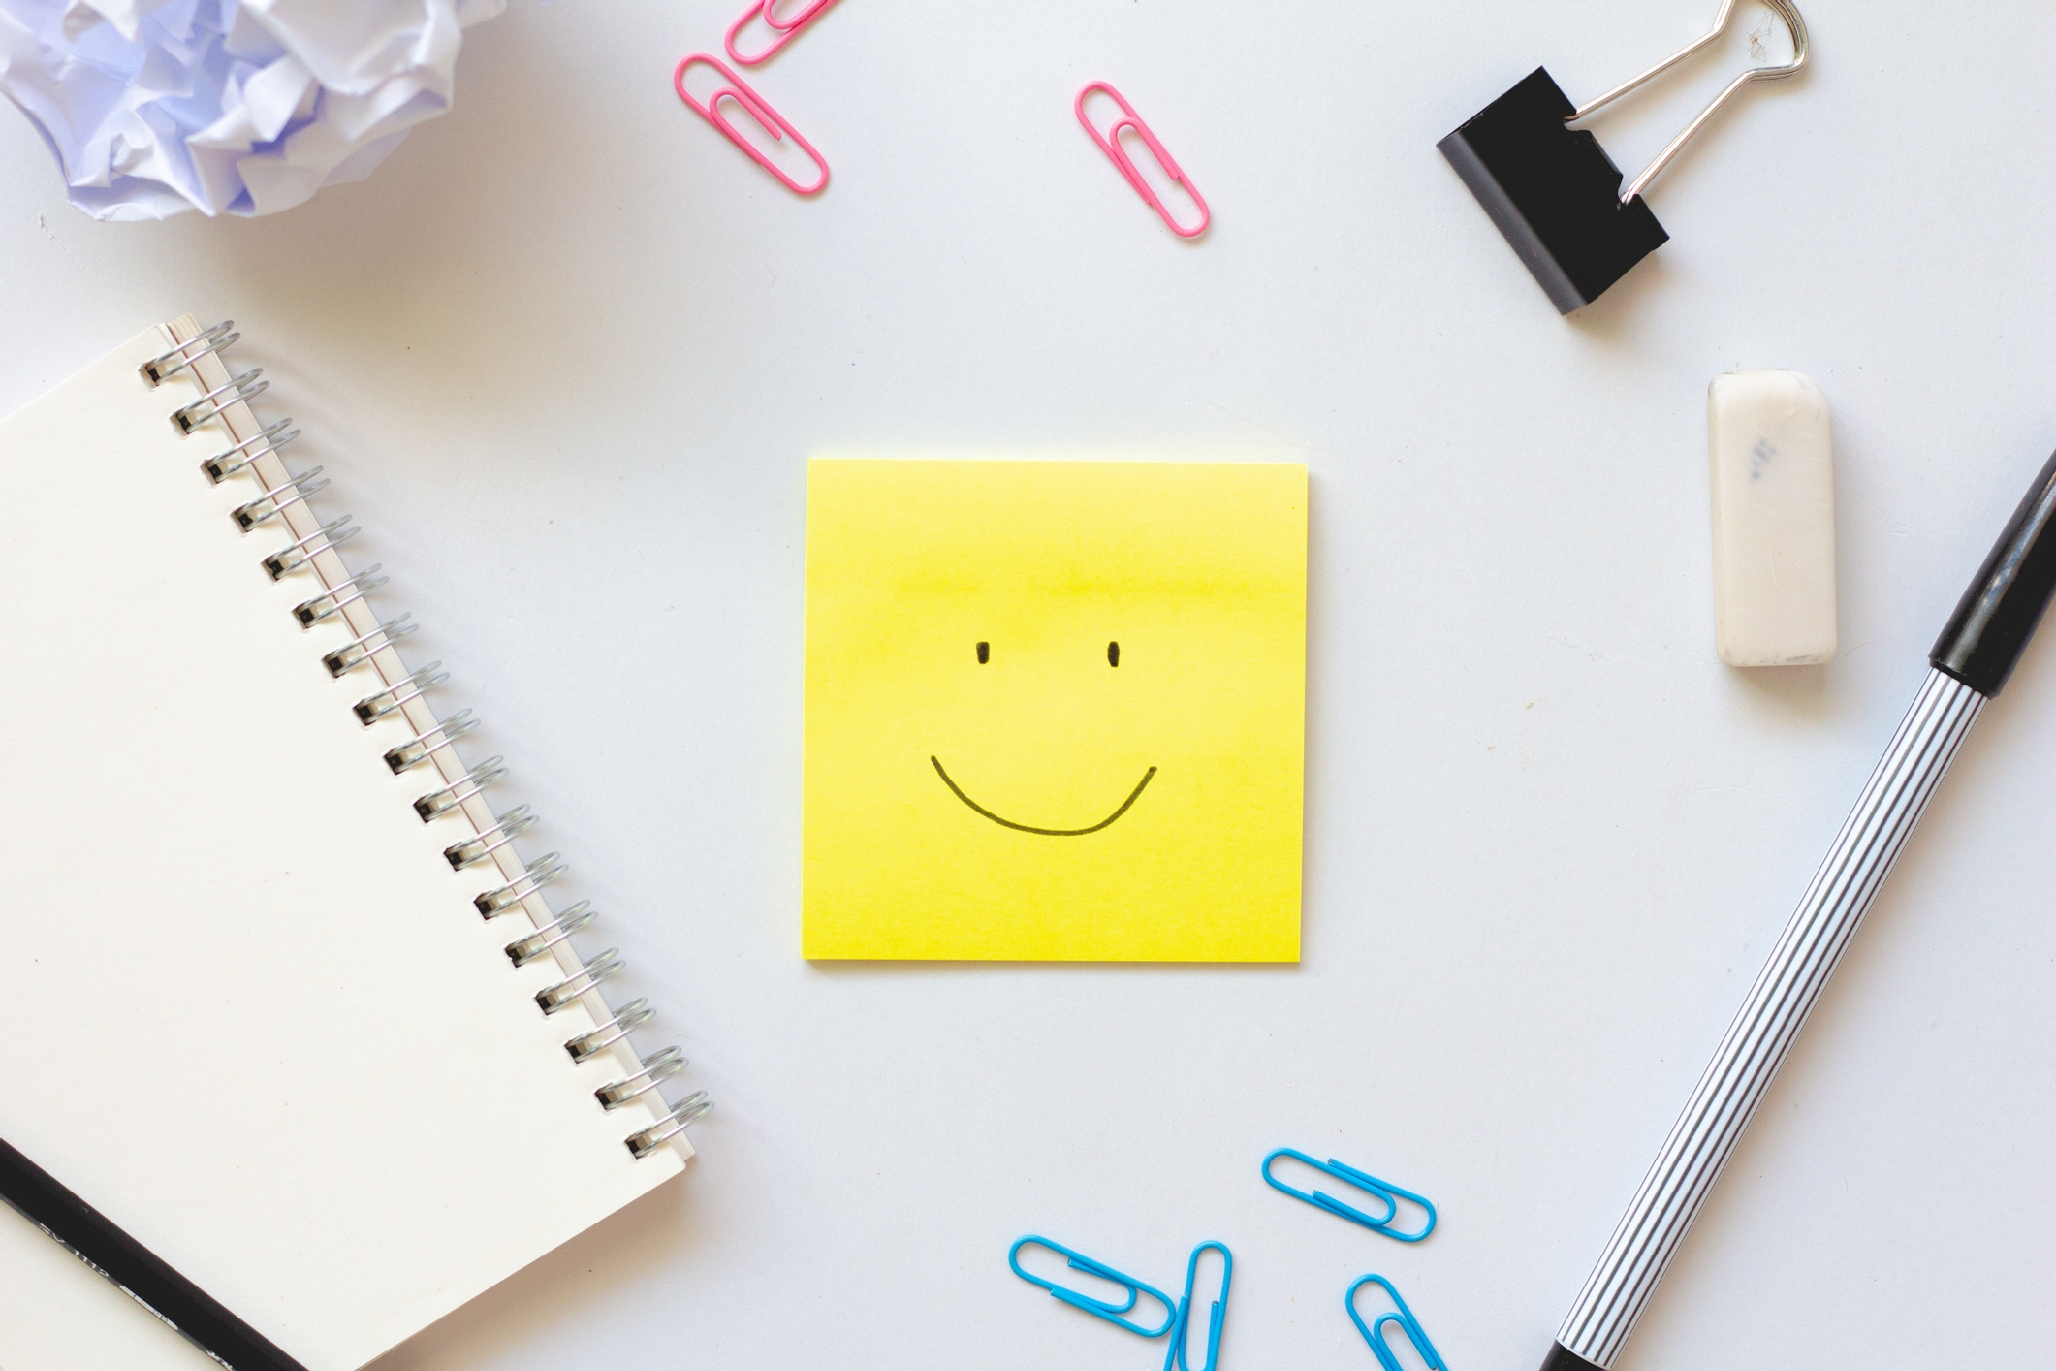 Image of post-it note with a smiley face